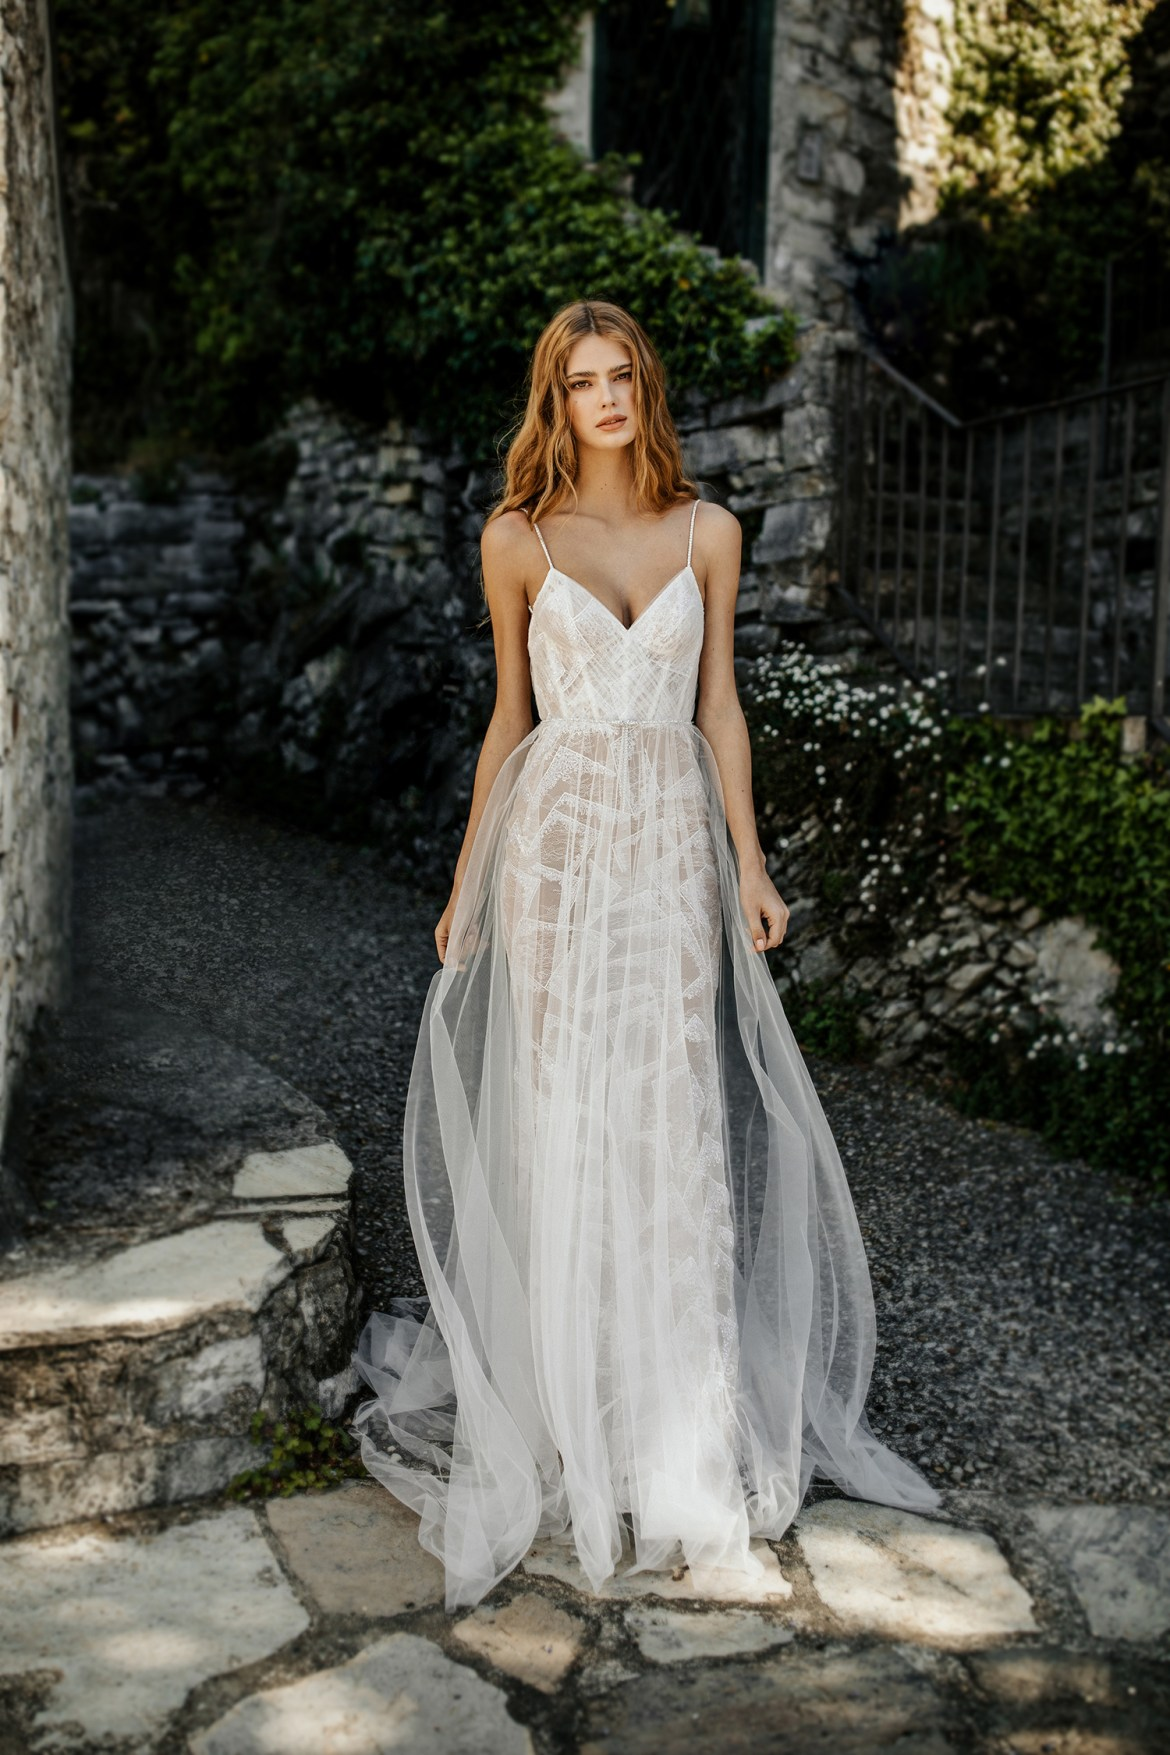 MUSE by Berta Spring 2022 Collection. www.theweddingnotebook.com